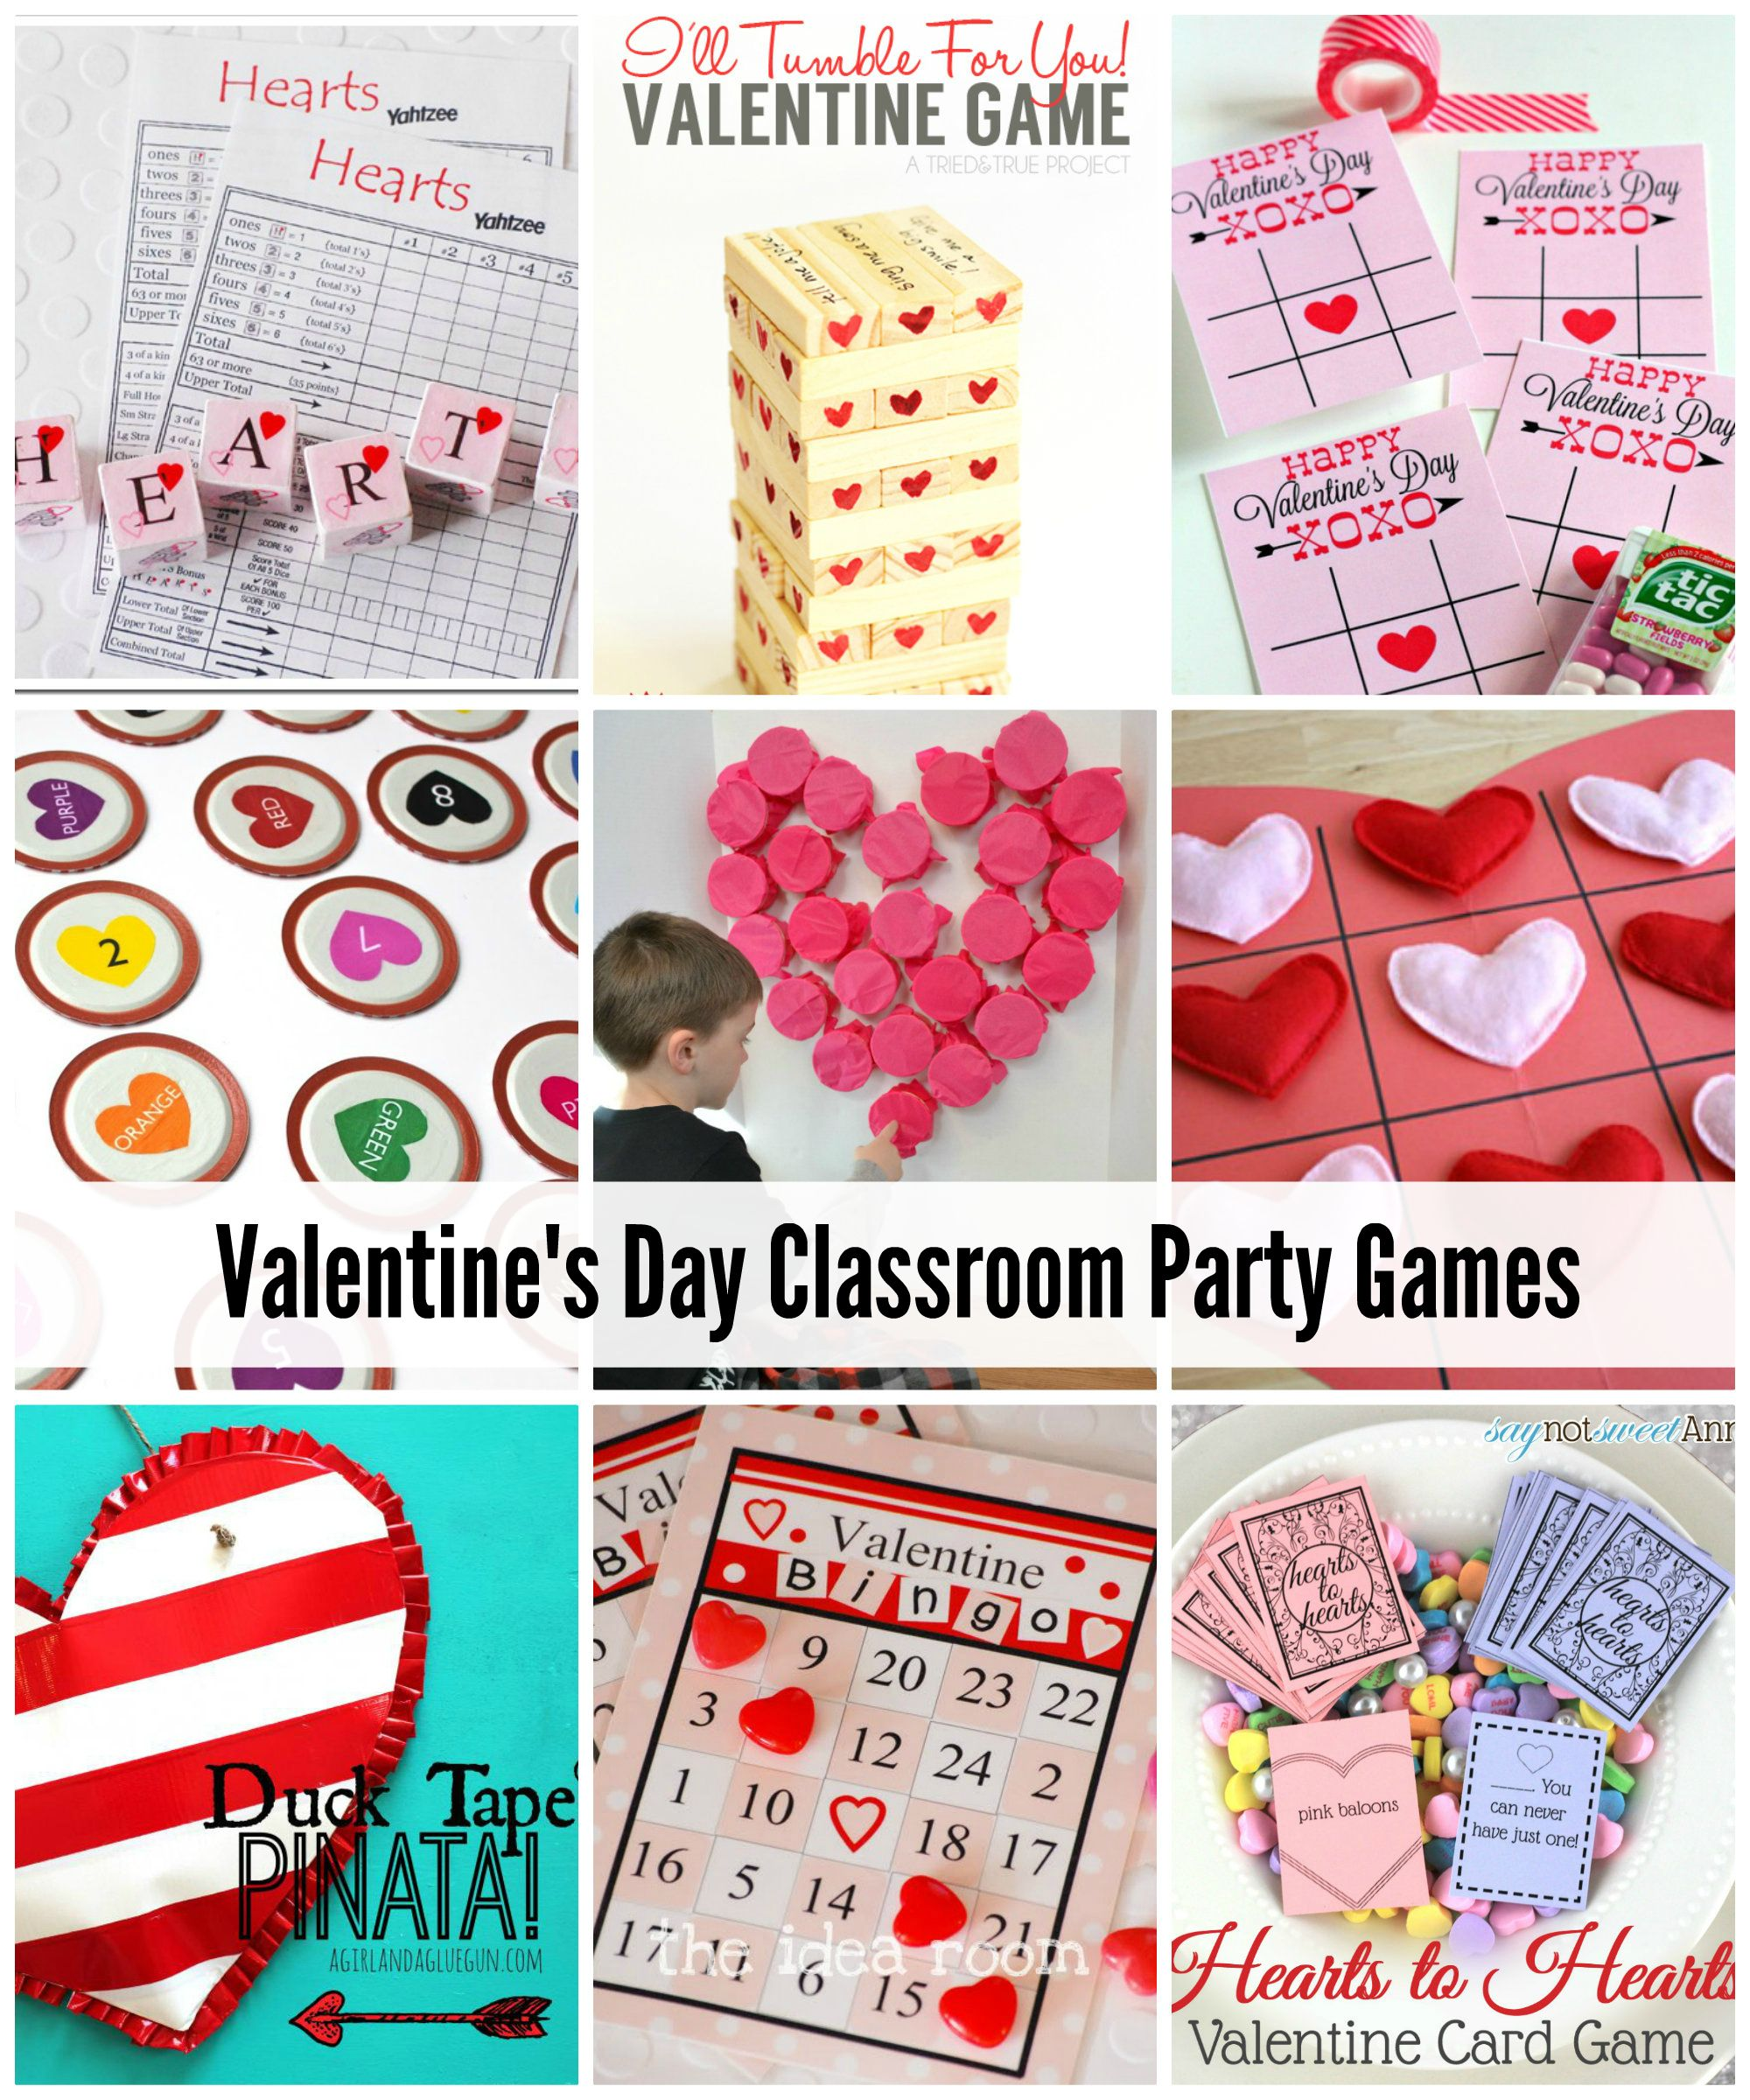 valentines day classroom game ideas - Valentines Day Game